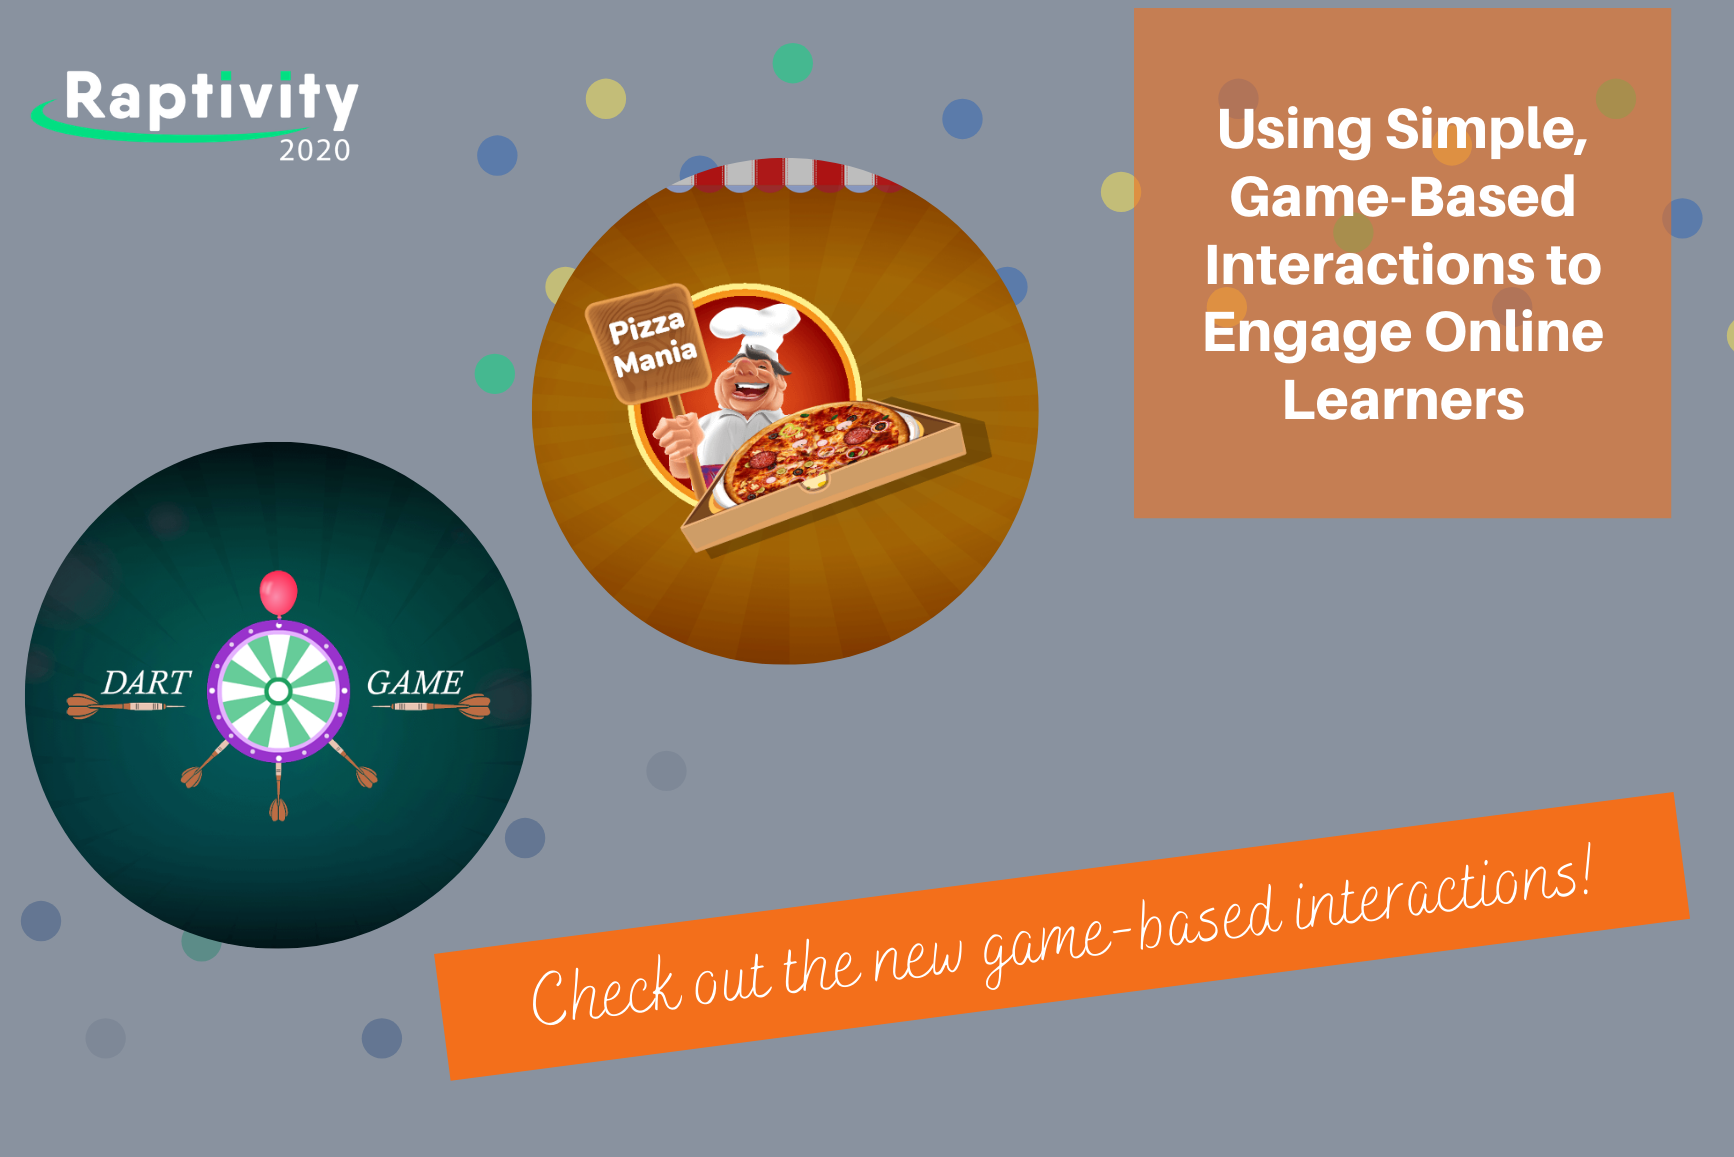 Using Simple, Game-Based Interactions to Engage Online Learners